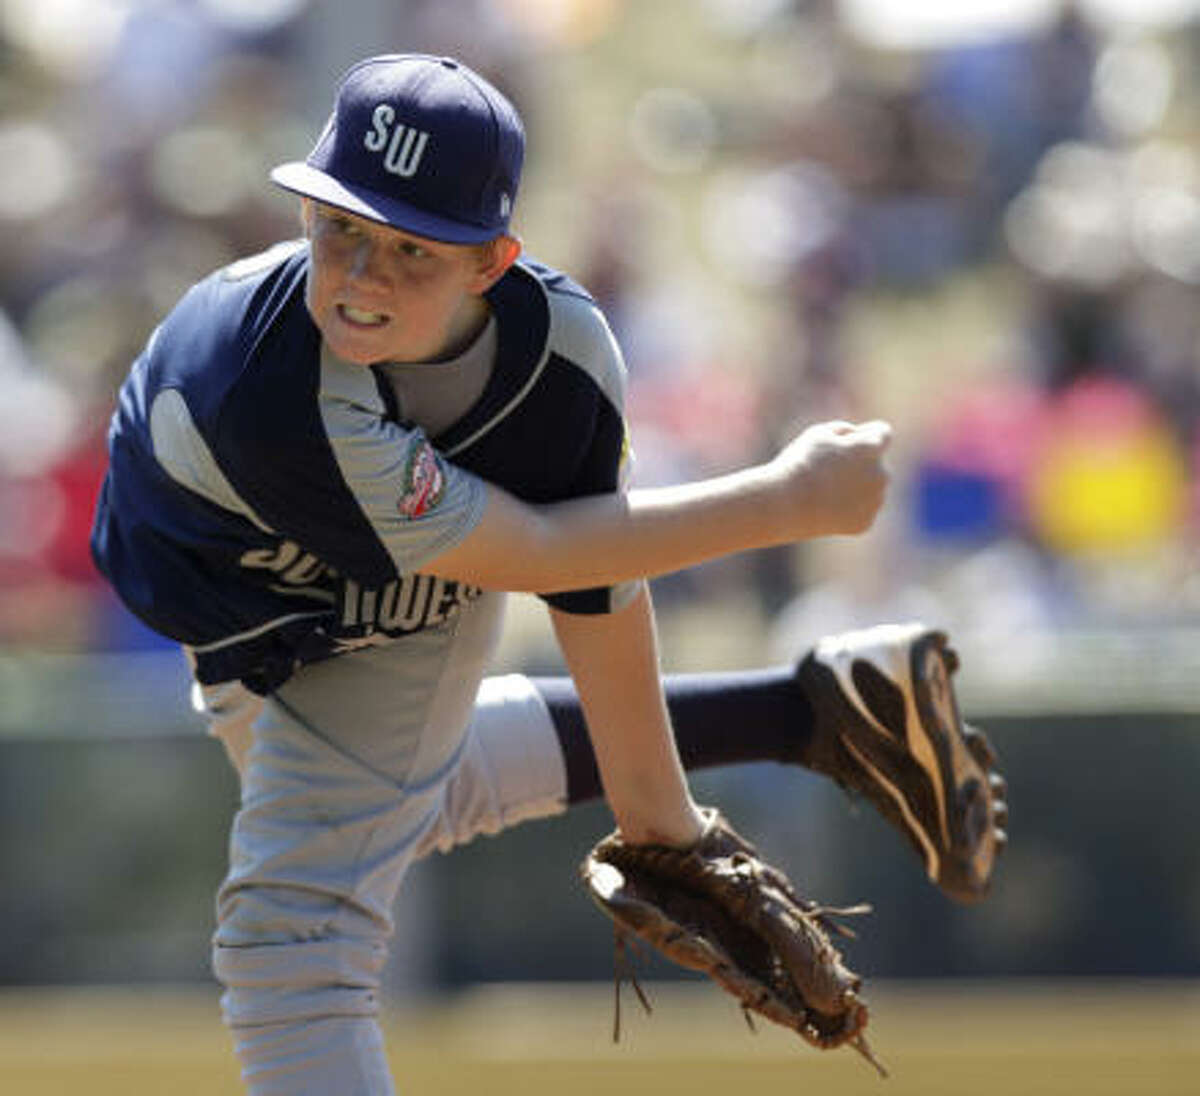 Pearland's Jaron Roblyer delivers during the first inning against Taiwan.